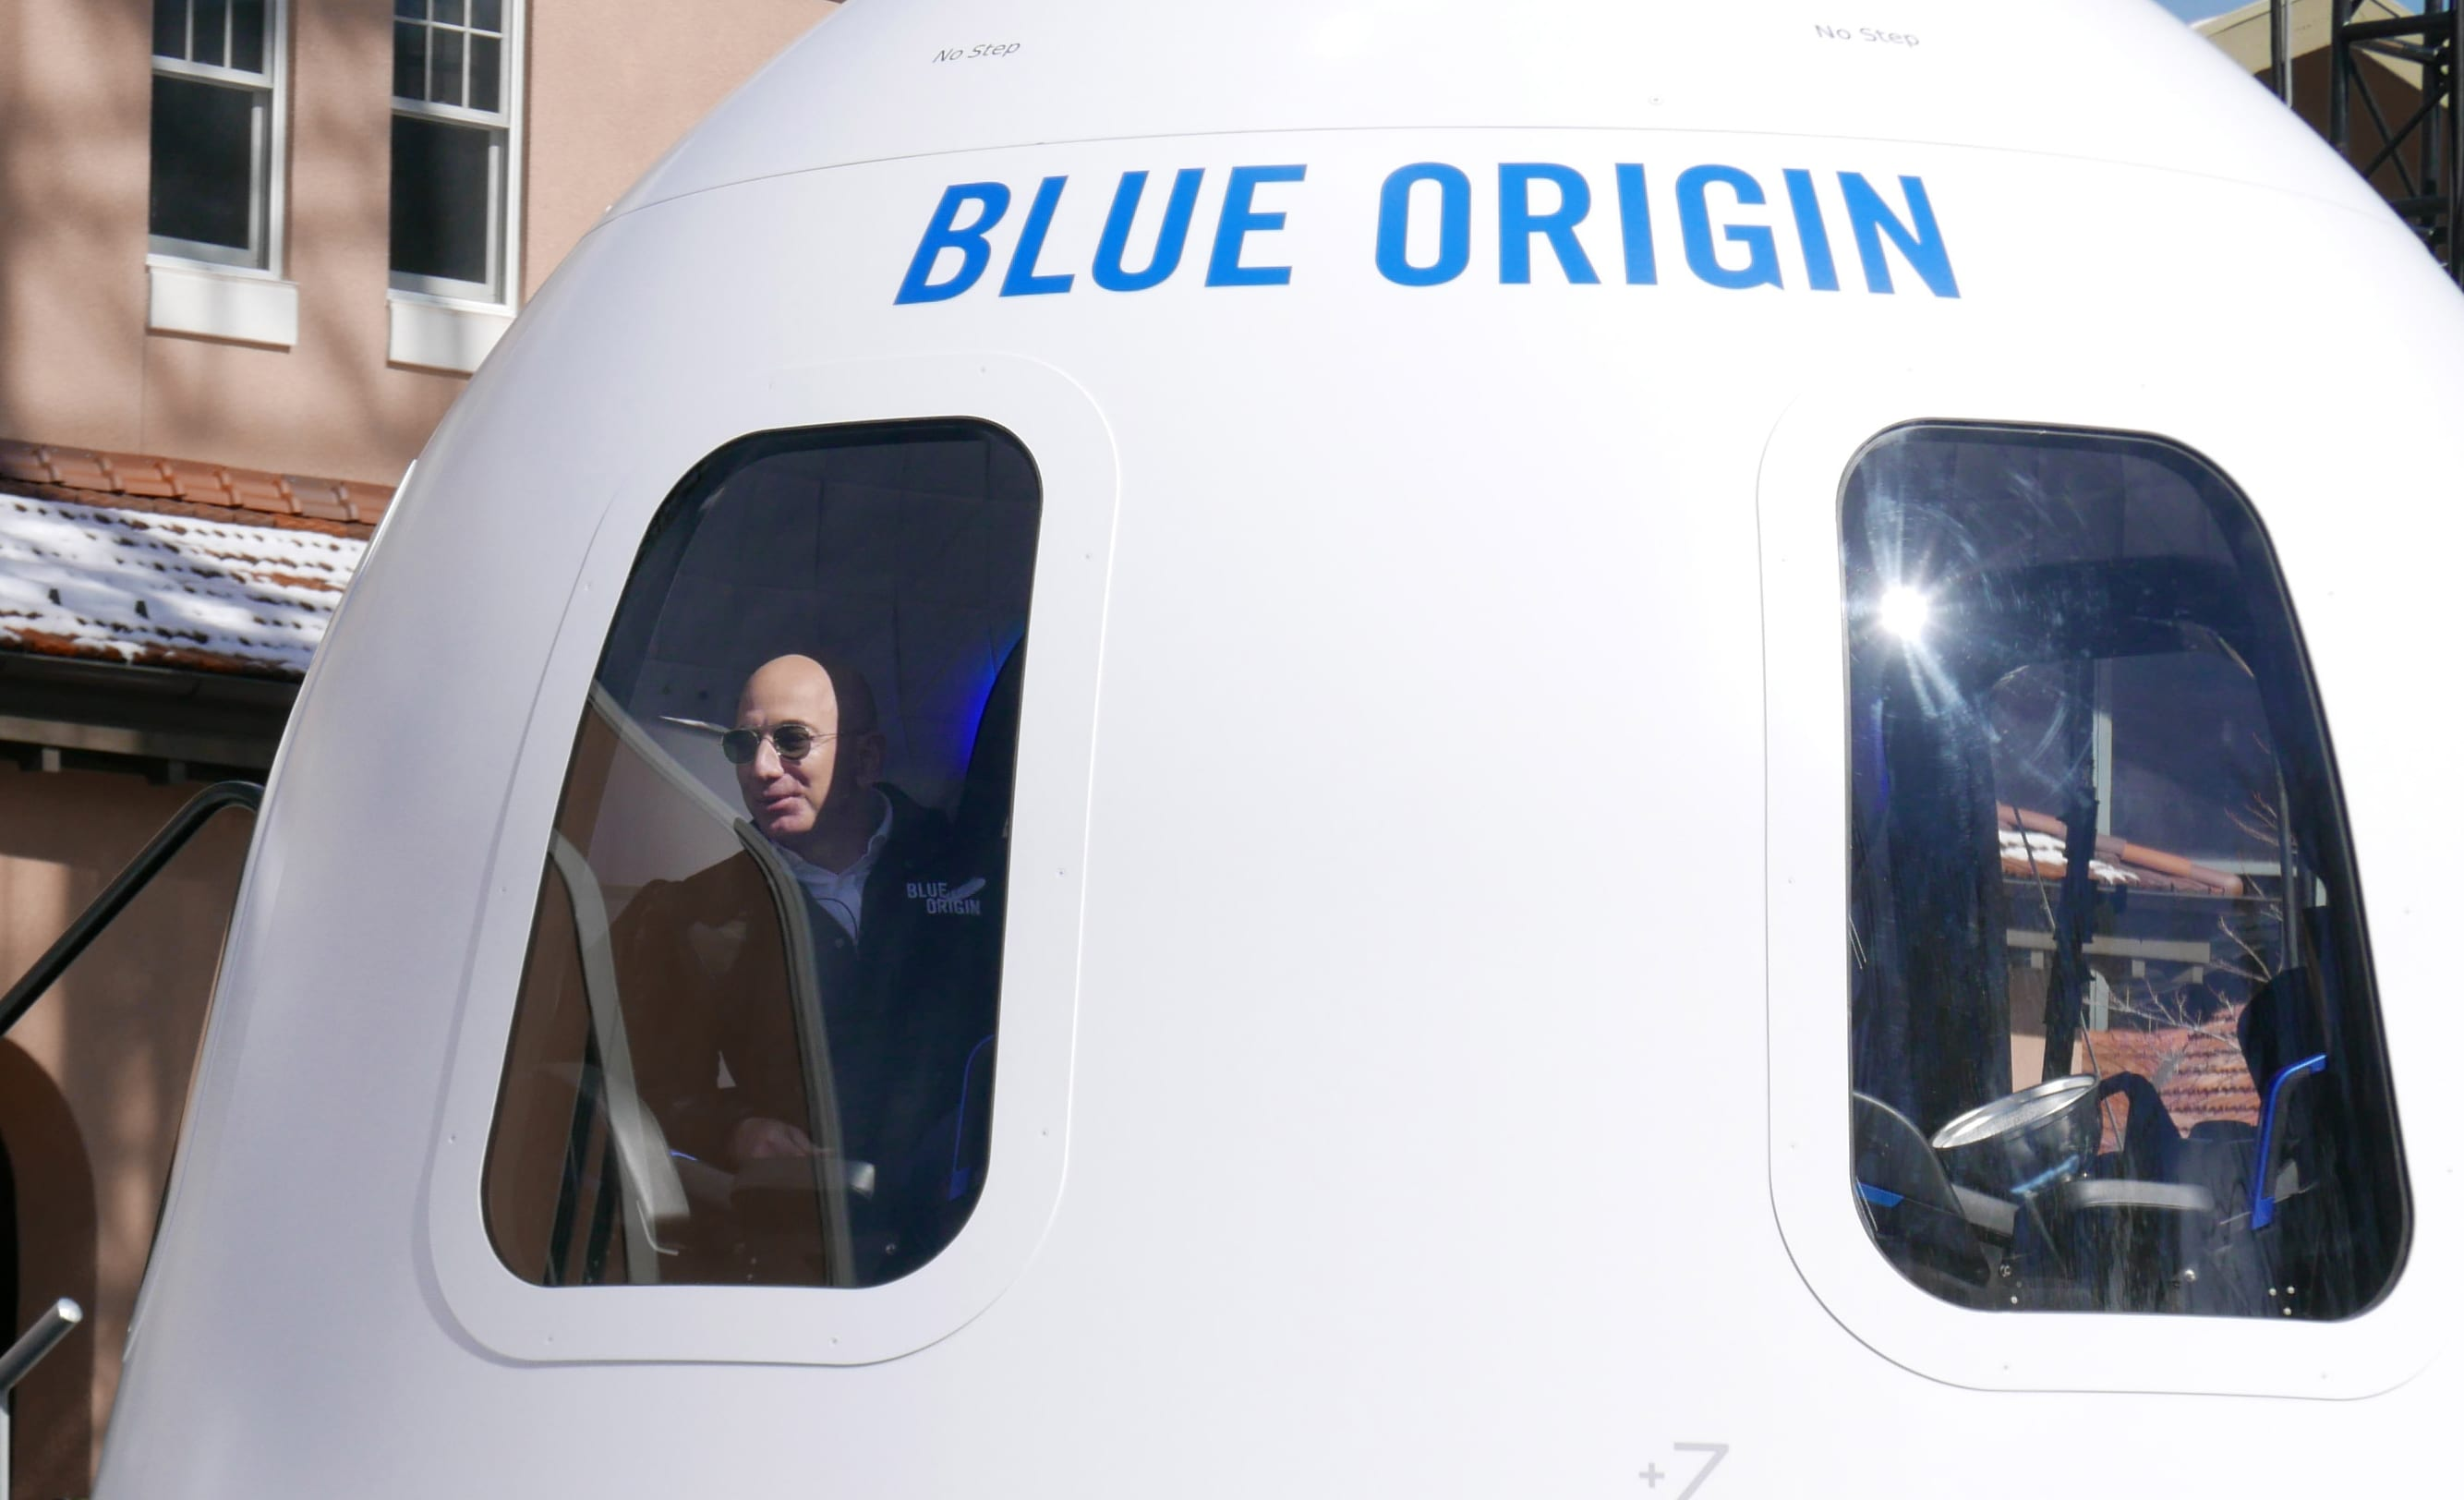 Jeff Bezos will fly on the first passenger spaceflight of his company Blue Origin in July